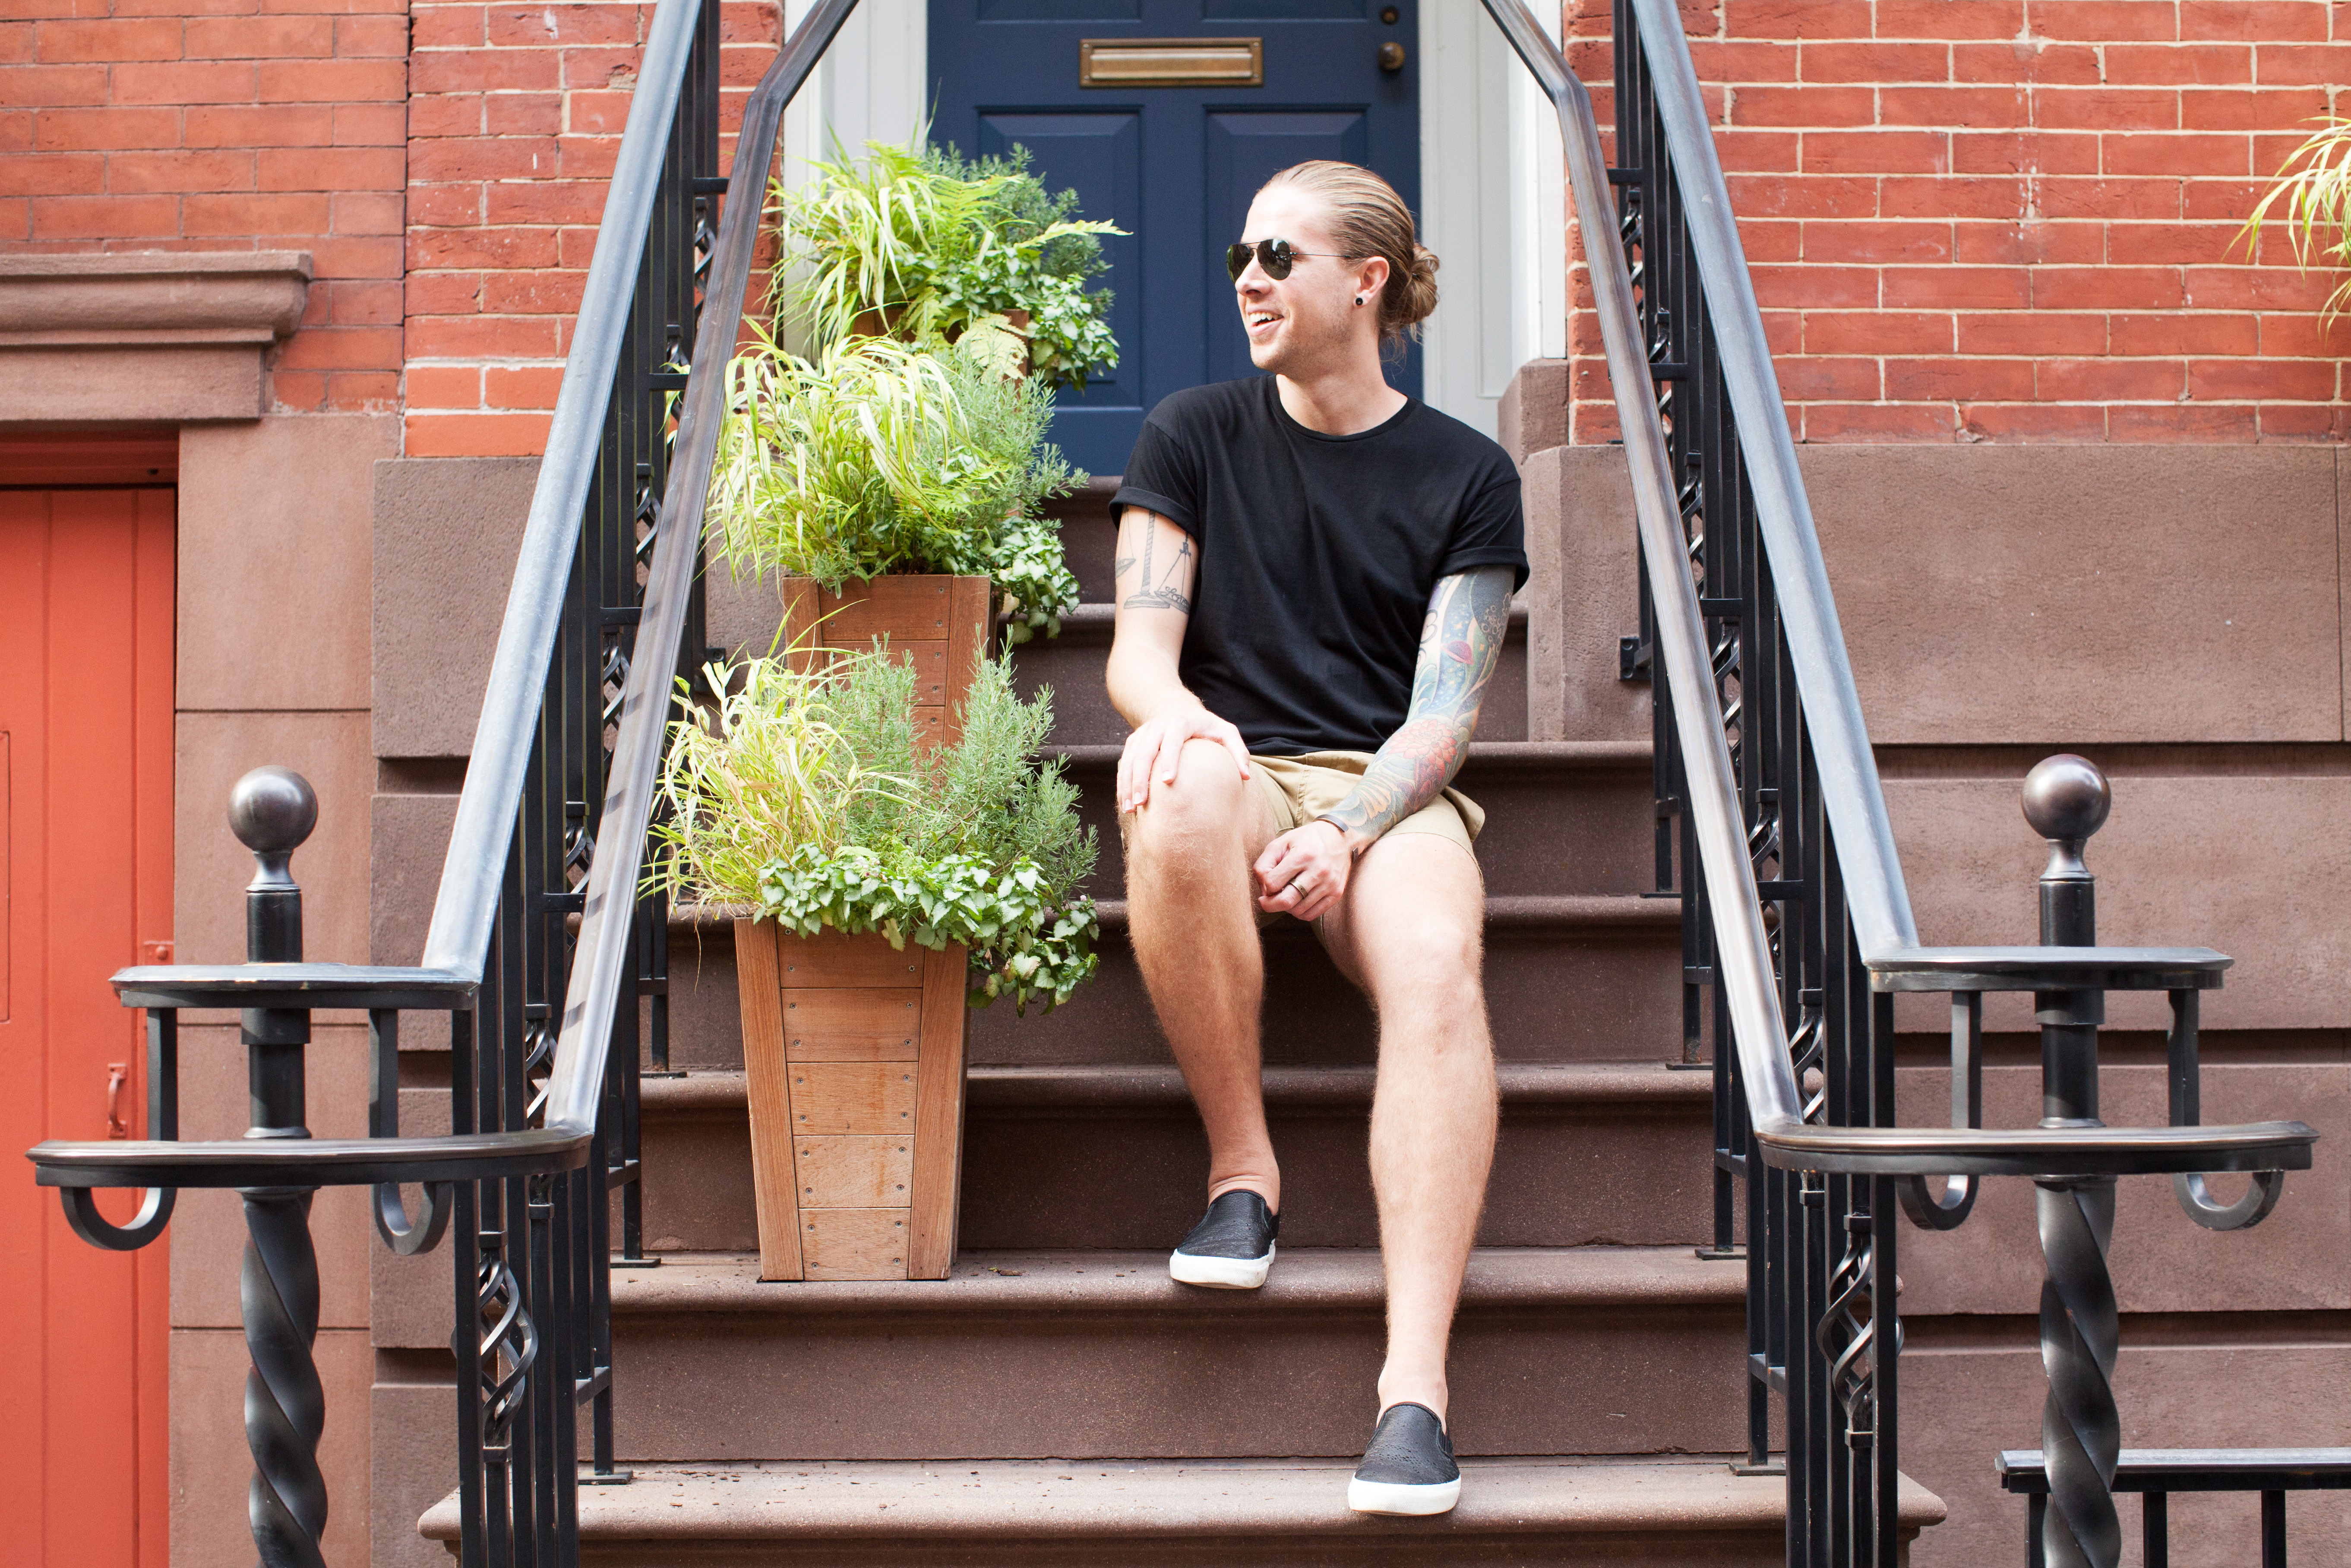 topman, hm, mens shorts, black t-shirt, how to dress in the summer